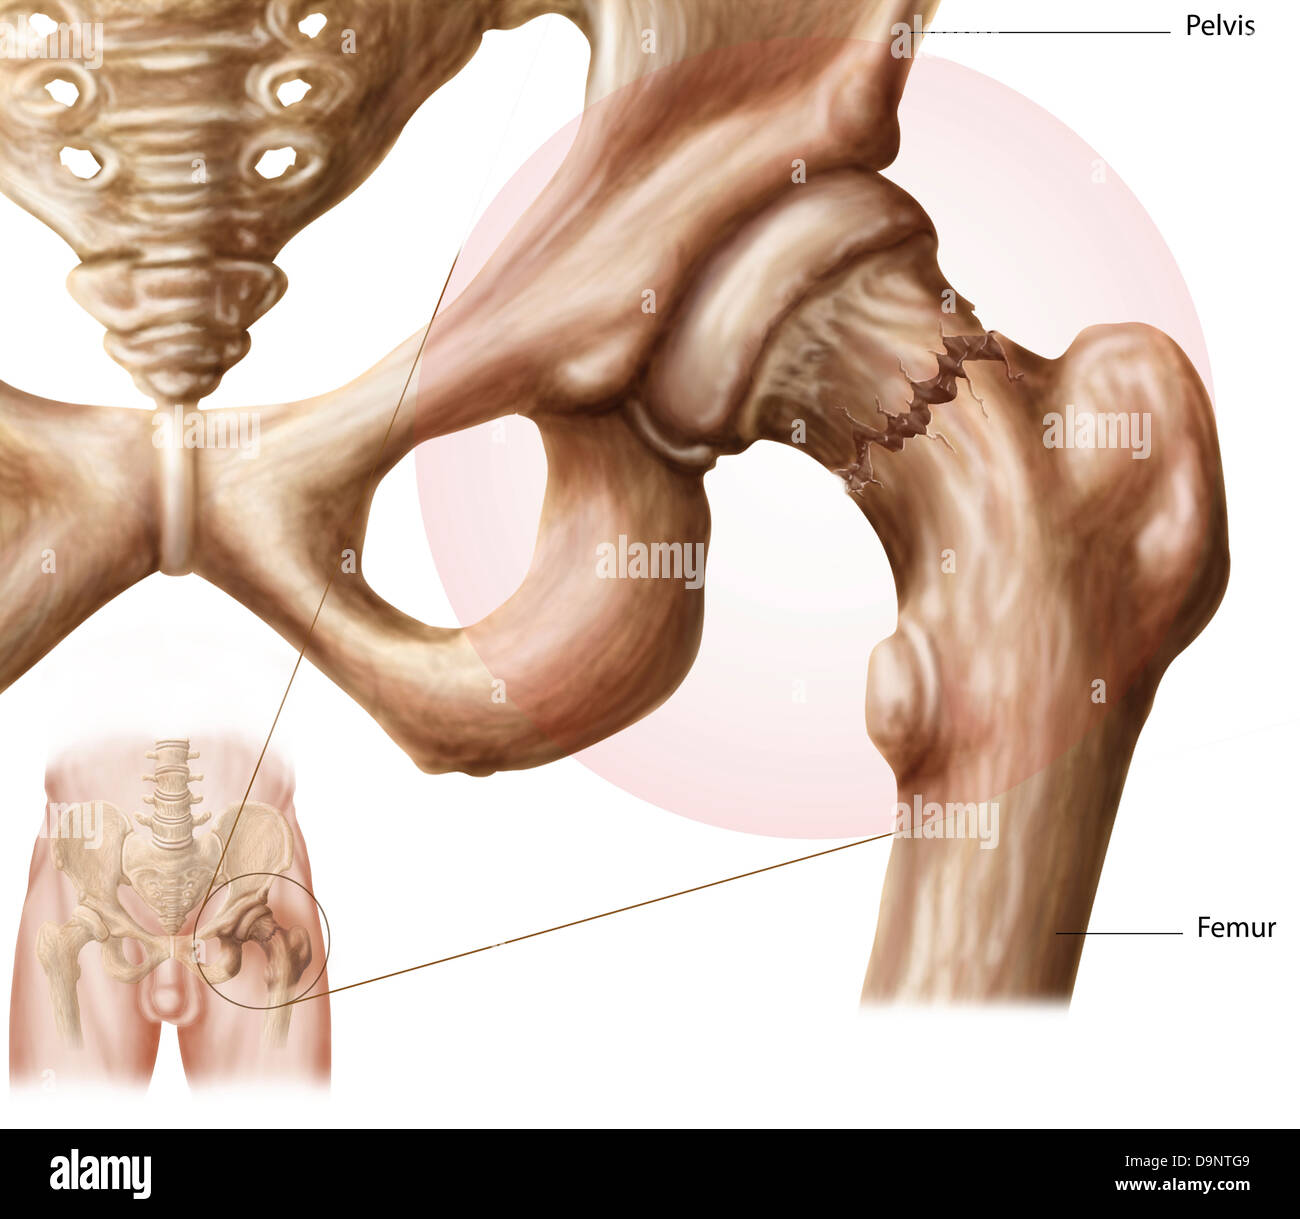 Anatomy of hip fracture. - Stock Image